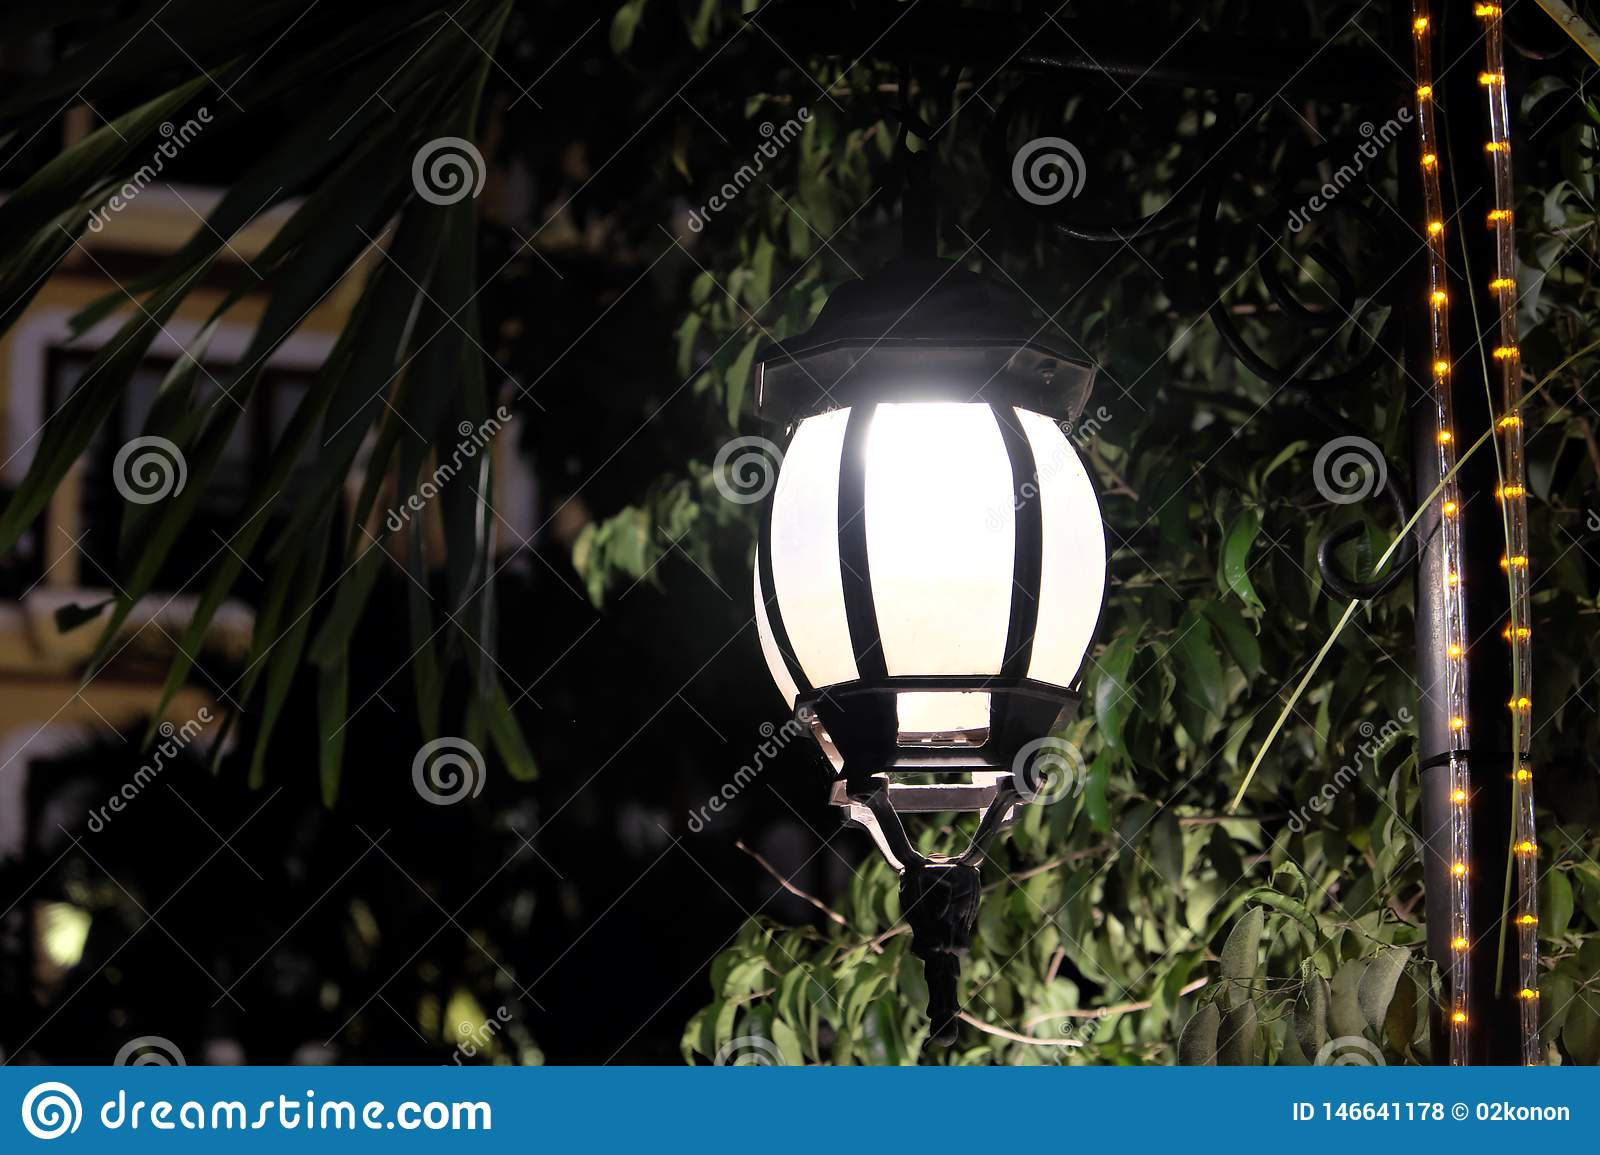 Forged vintage lantern illuminates the leaves of the tree. Bright light emanating from a street lamp